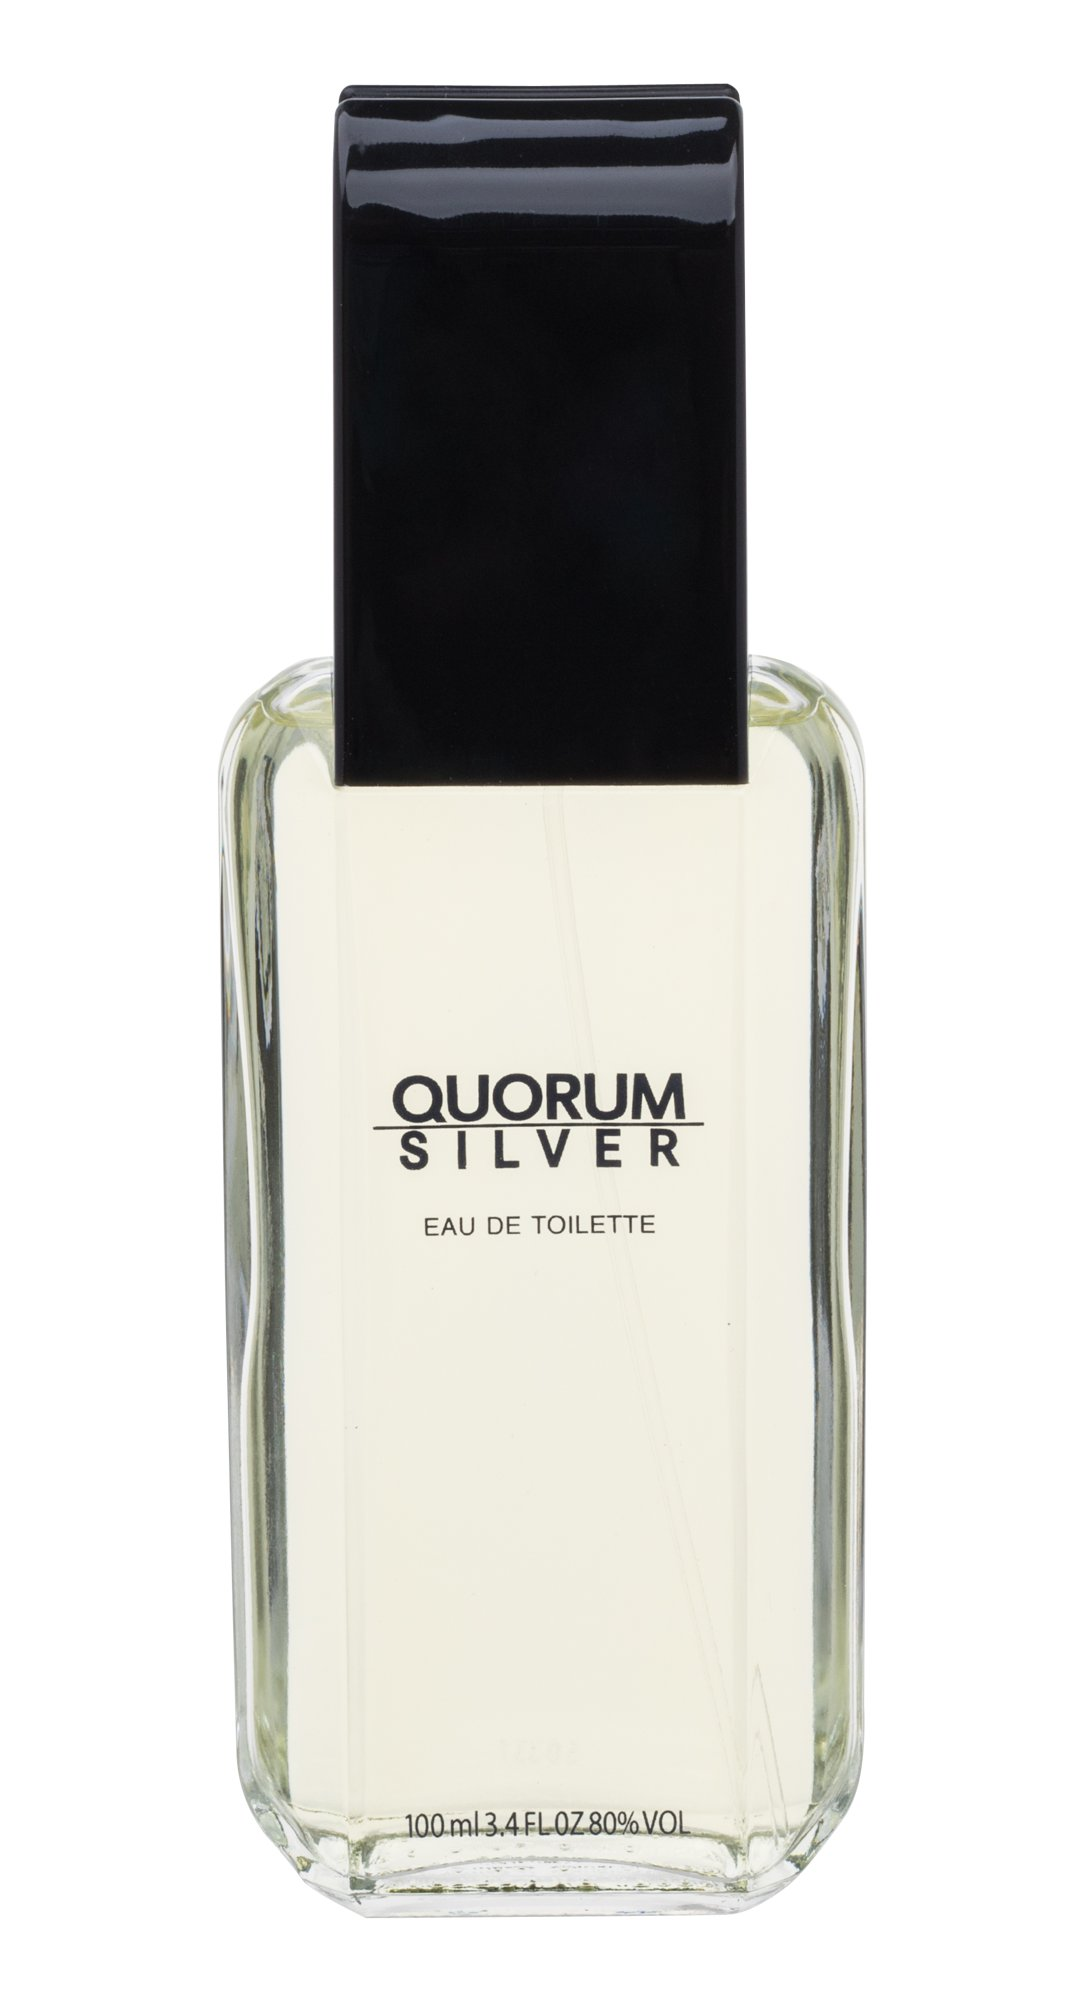 Antonio Puig Quorum Silver, edt 100ml